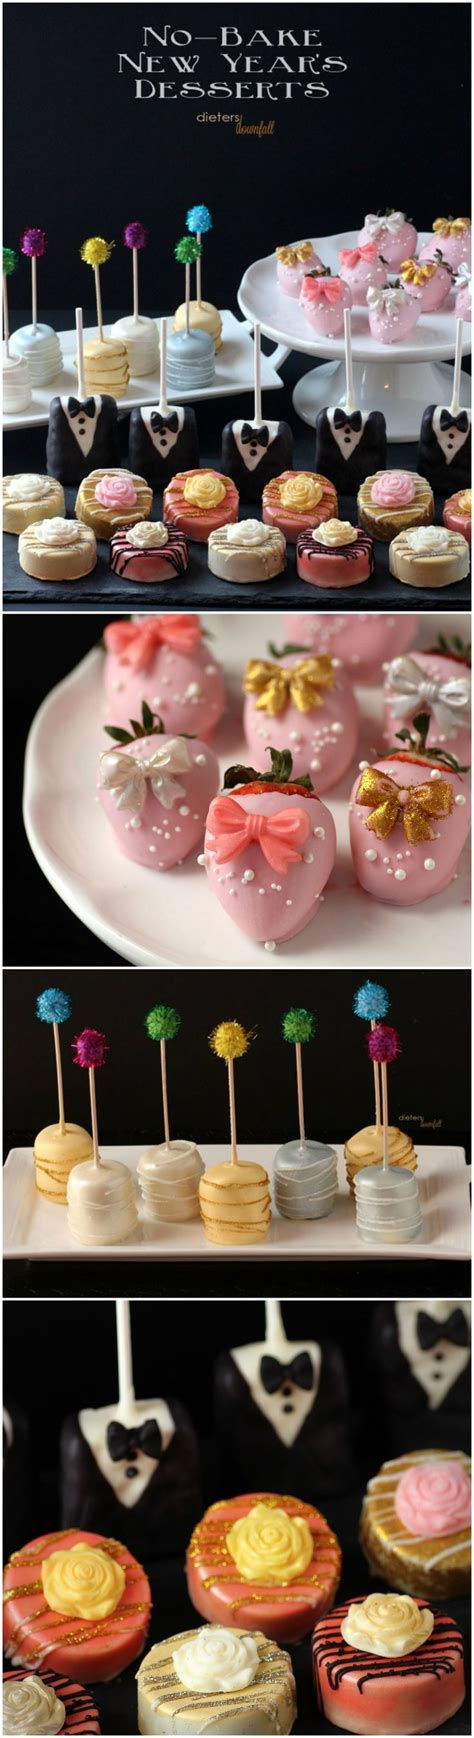 baked new year goodies 236 best images about bake sale scrapbook on